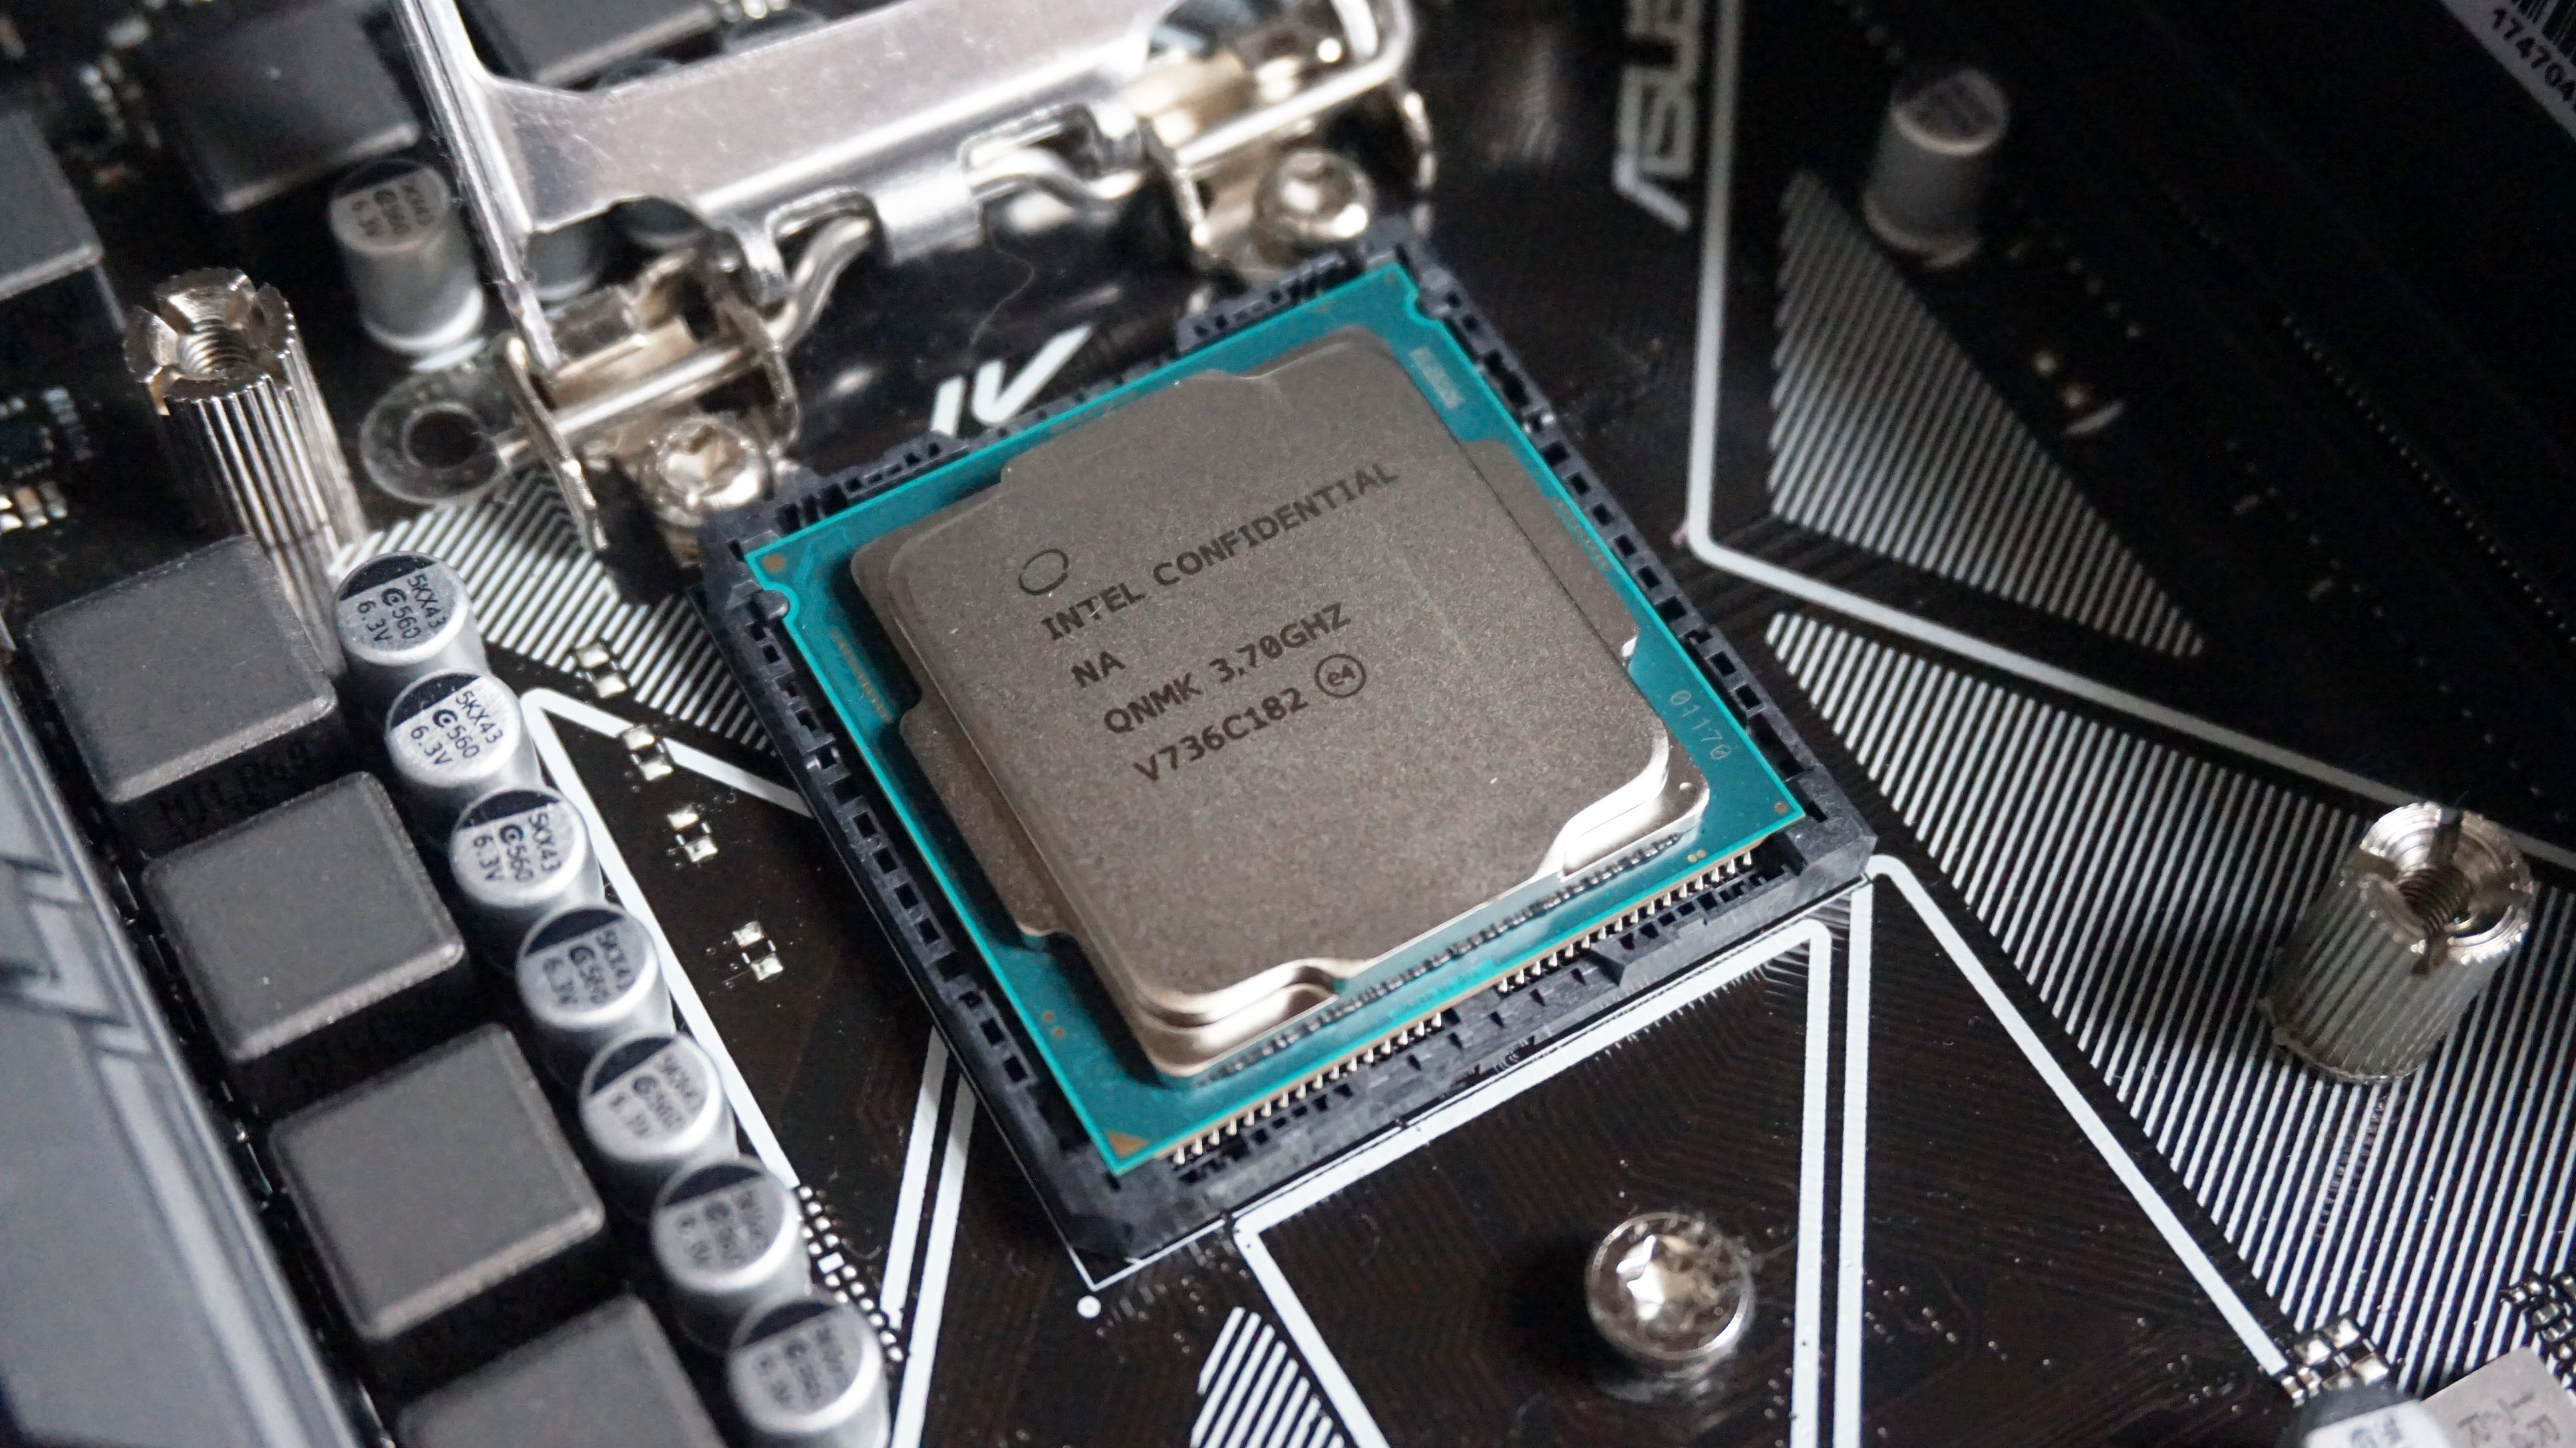 Intel Core i7-8700K review: Get the i7-9700K instead | Rock